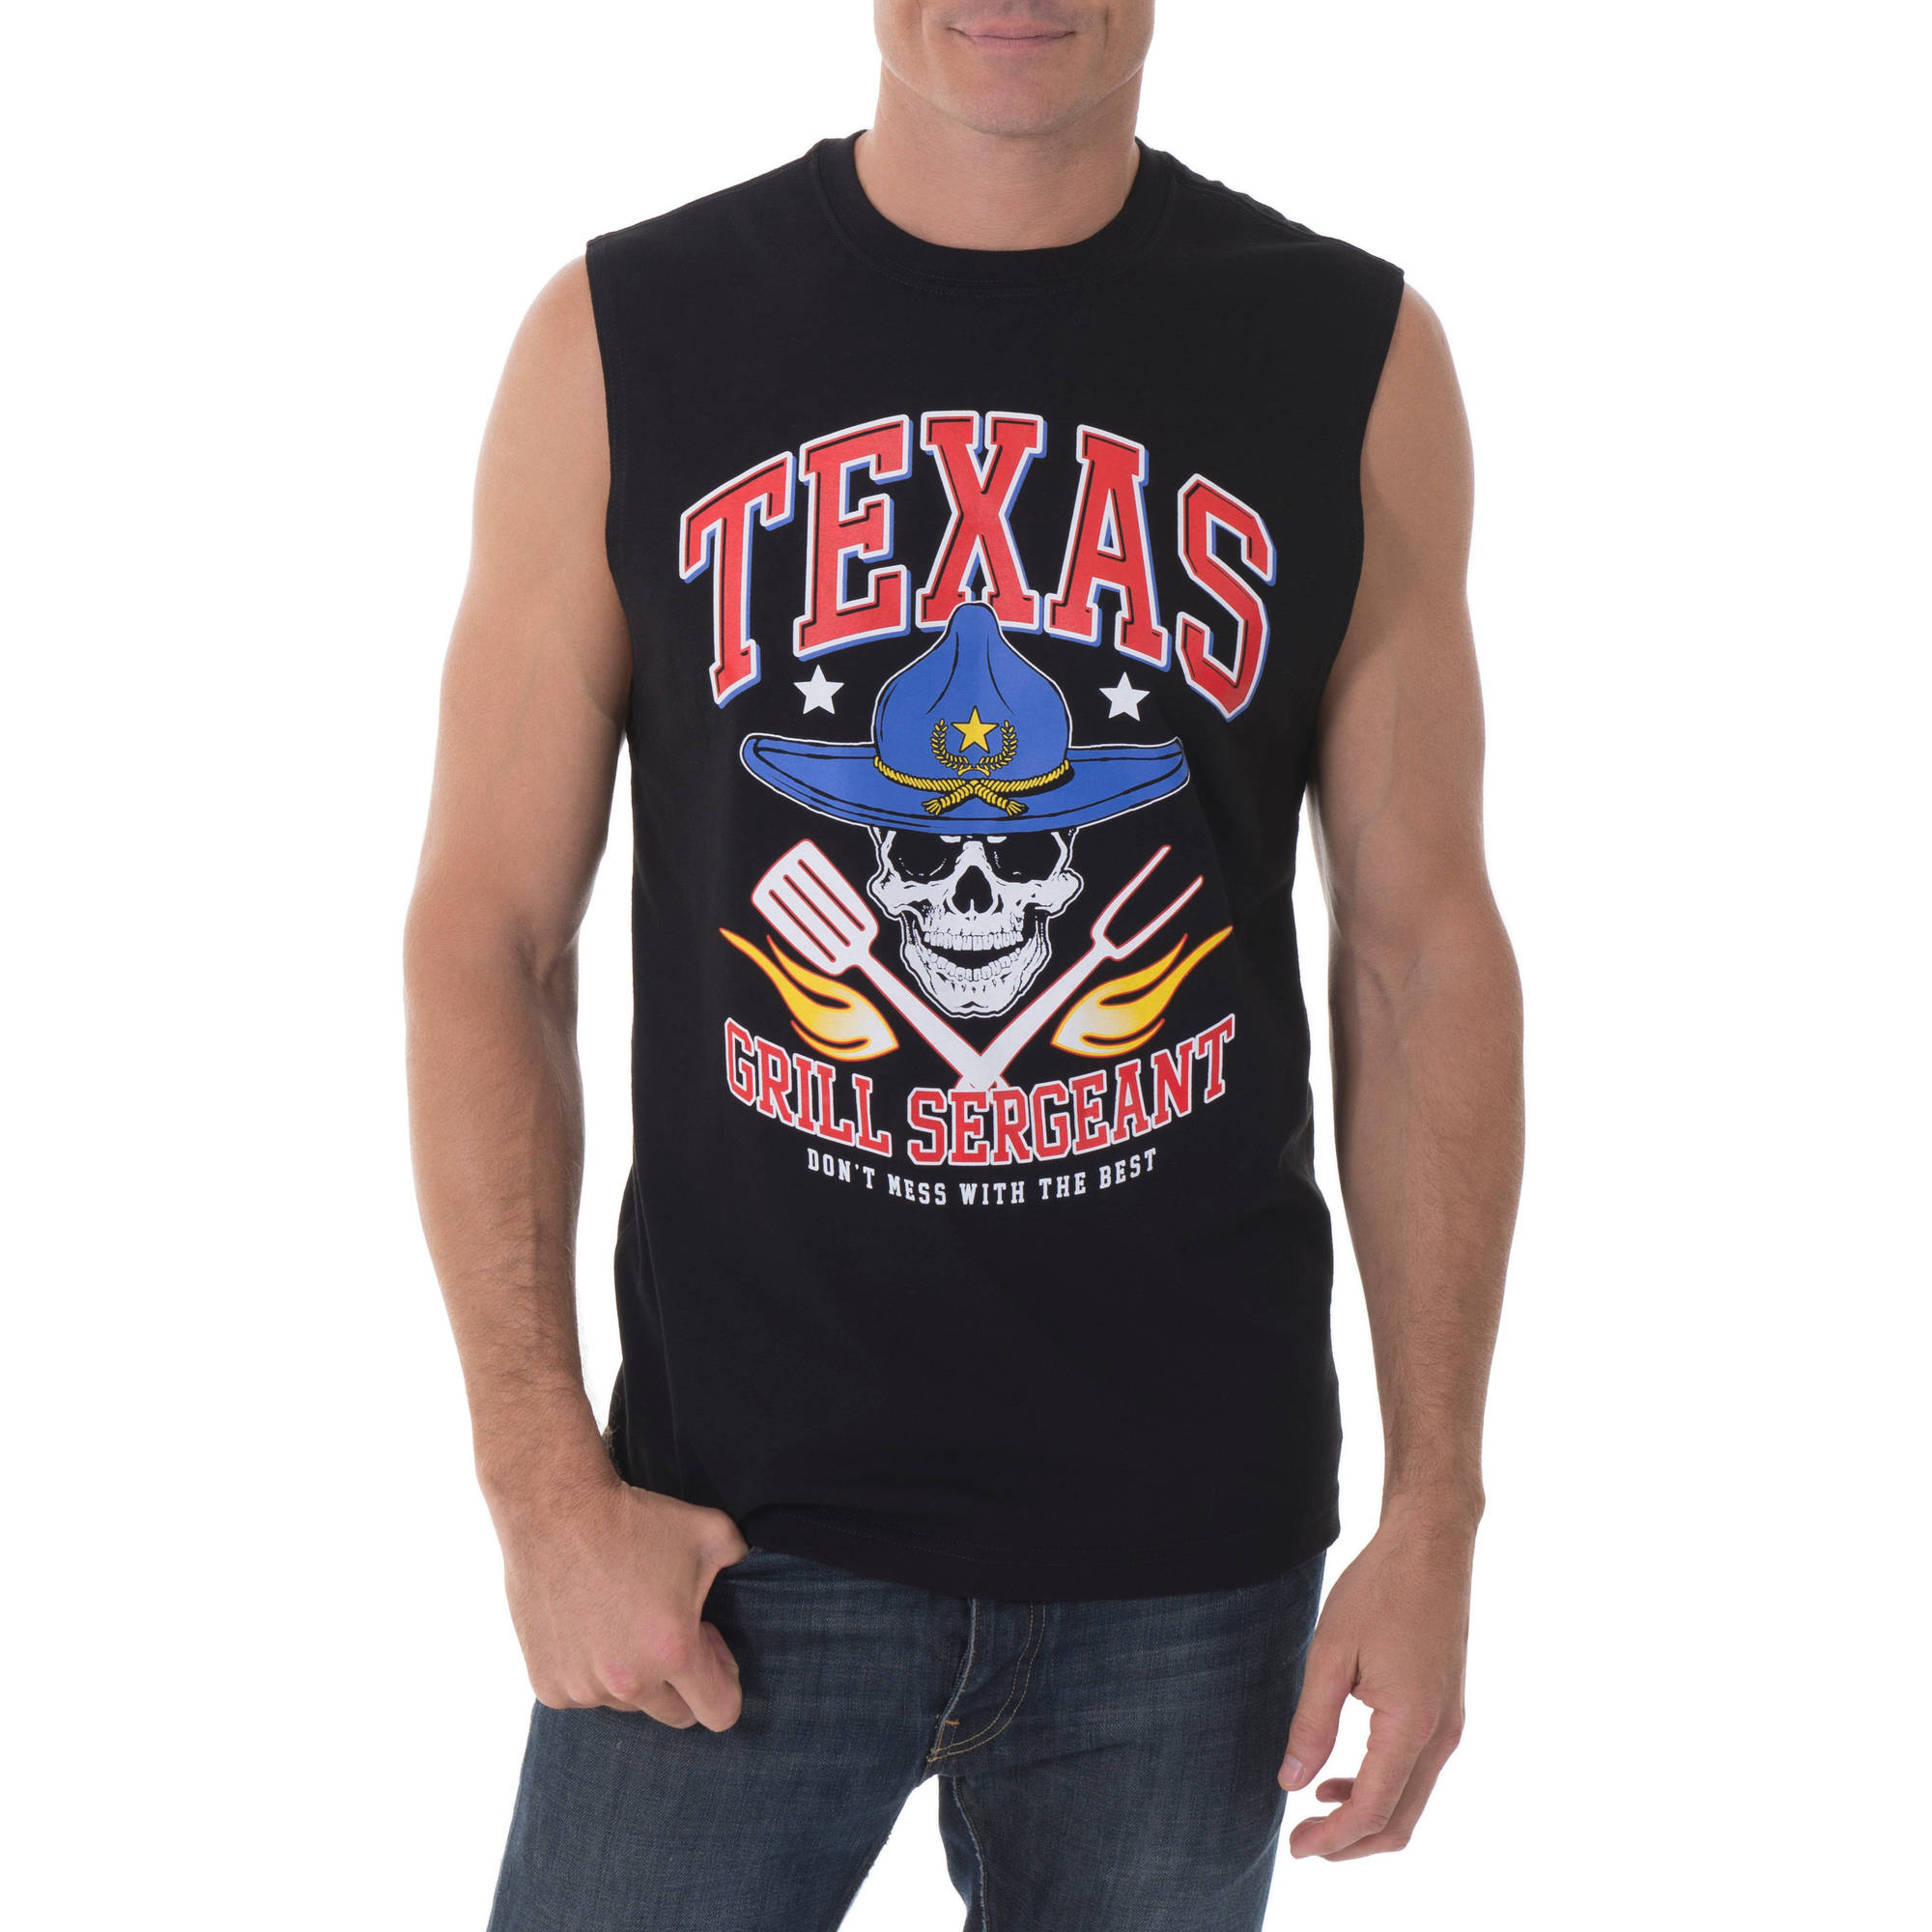 Faded Glory Men's Texas Grill Sergeant Graphic Muscle Tee